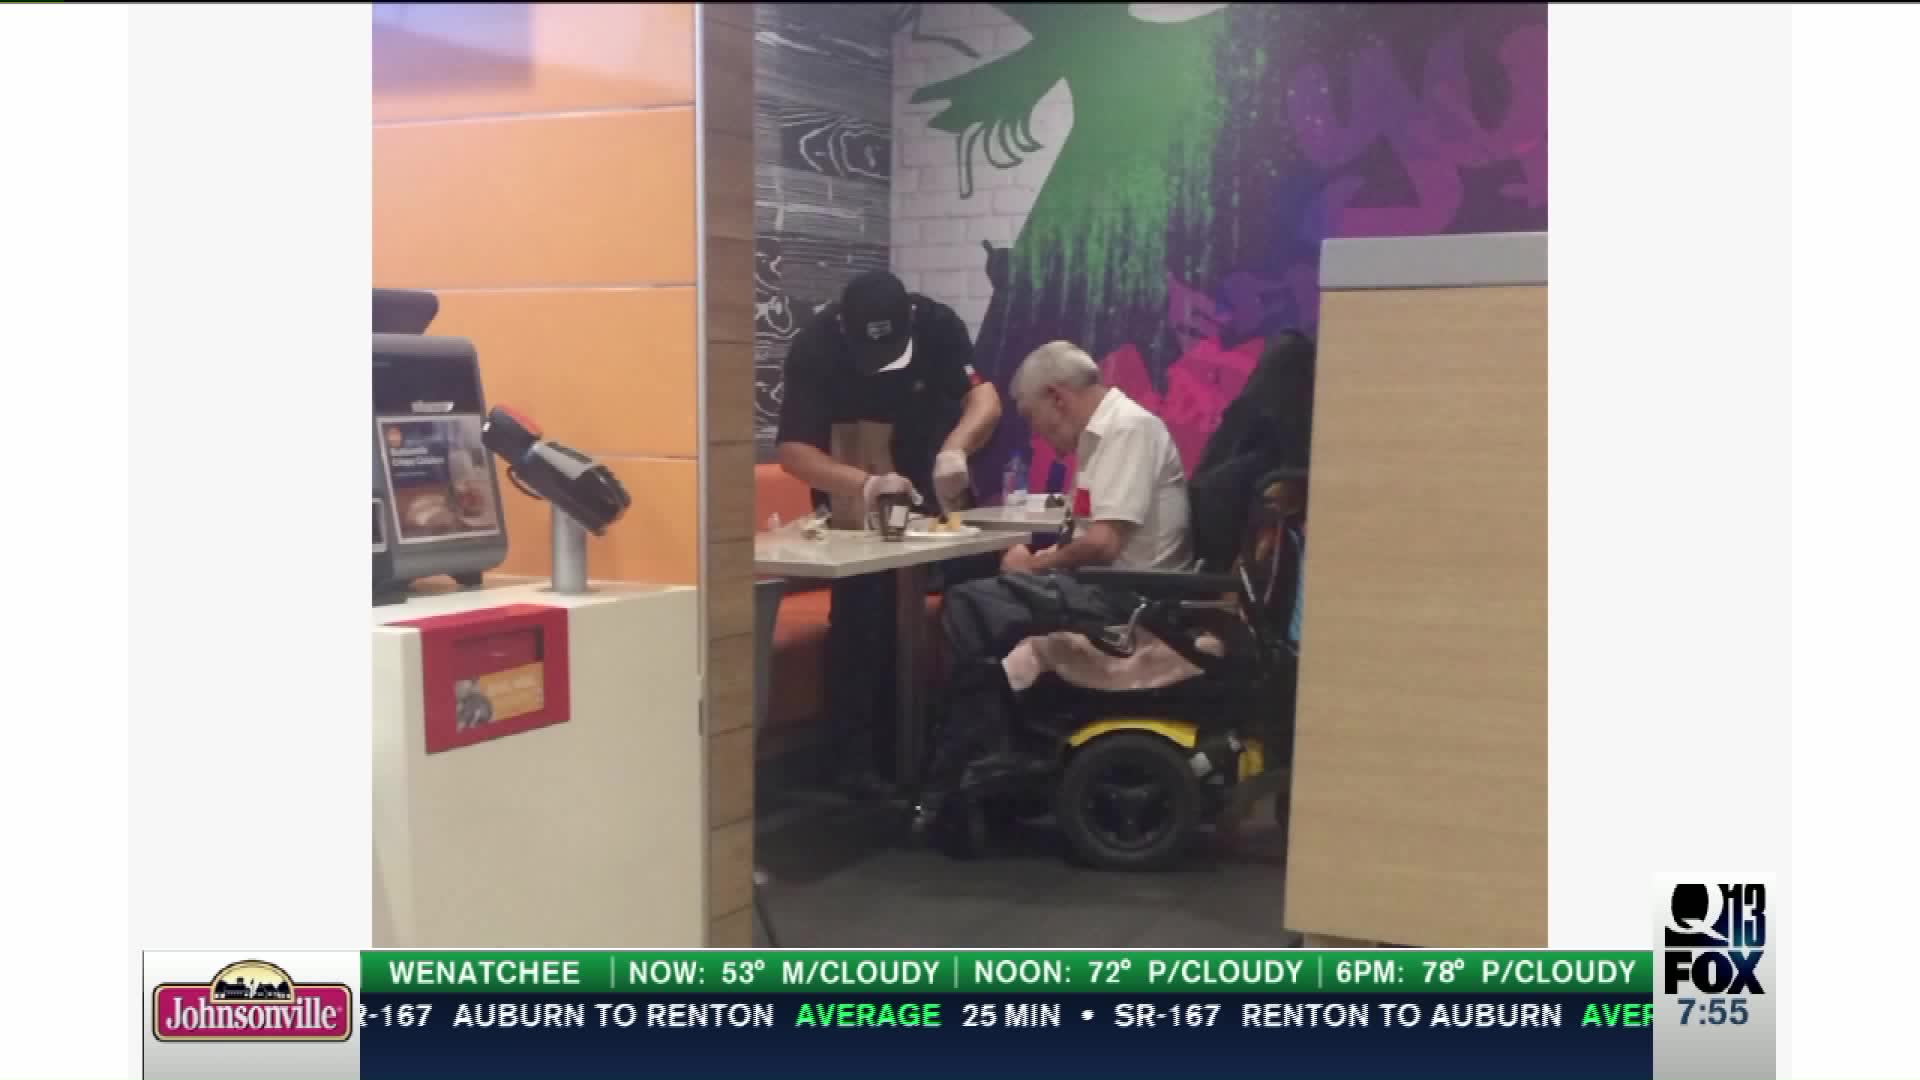 McDonald's Employee Goes Viral After Helping Elderly Man Feed Himself